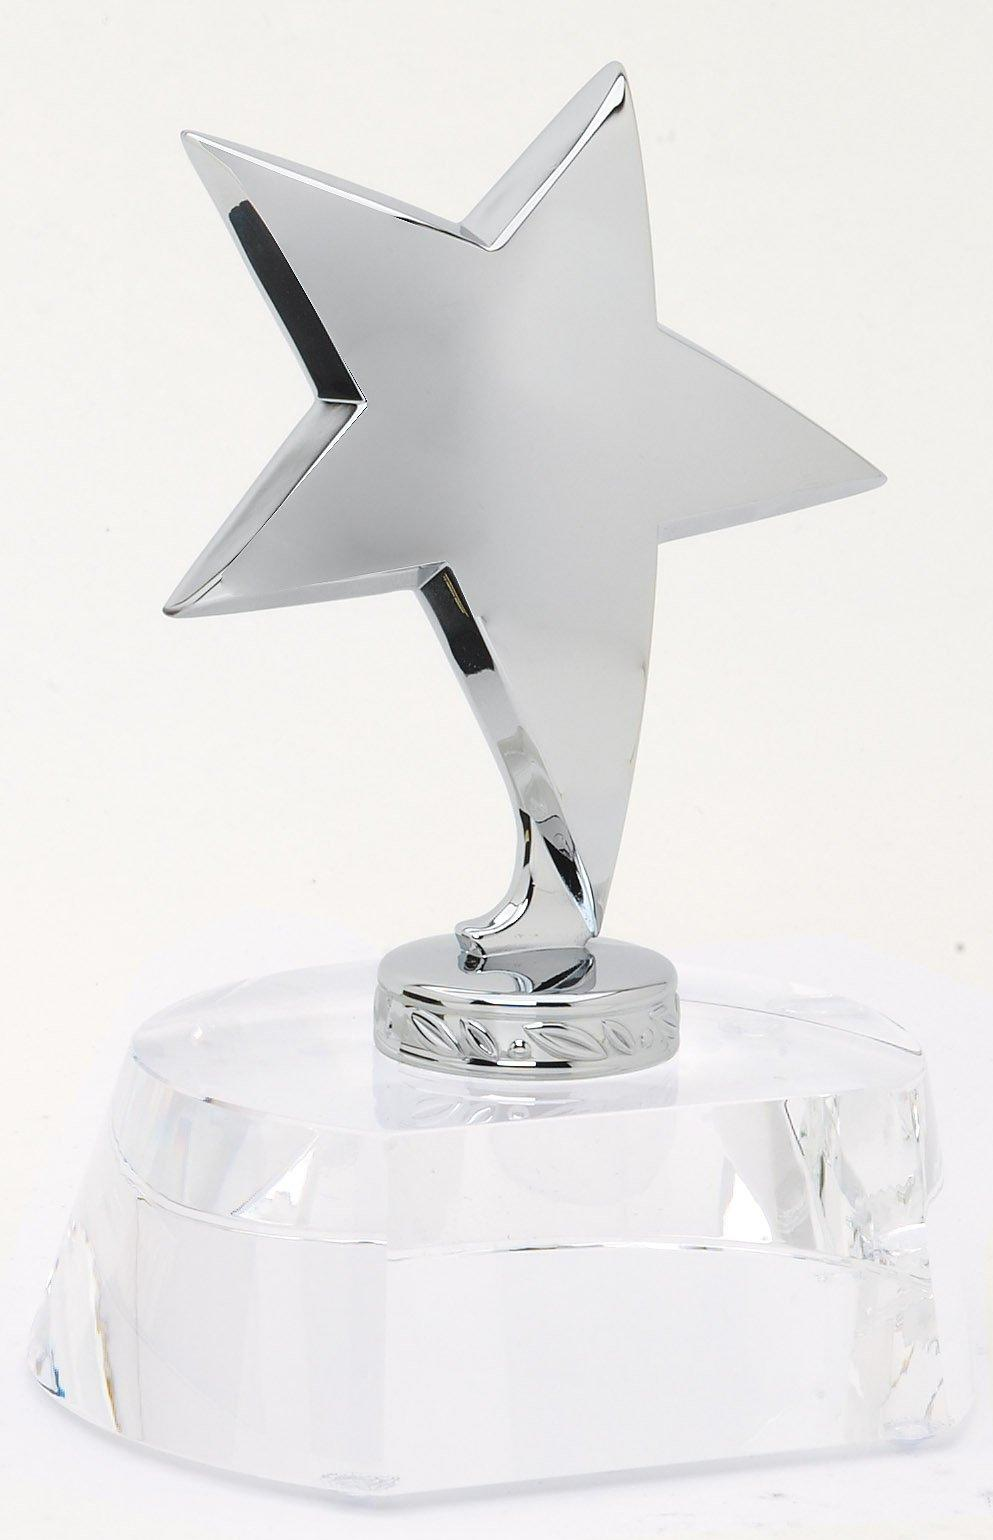 Optical Crystal Trophy With Polished Metal Silver Star. Gift Boxed Size 4 1/2 Inch X 5 3/4 Plate For Engraving - Cr327 - Paperweights Cut Trophies And CR327